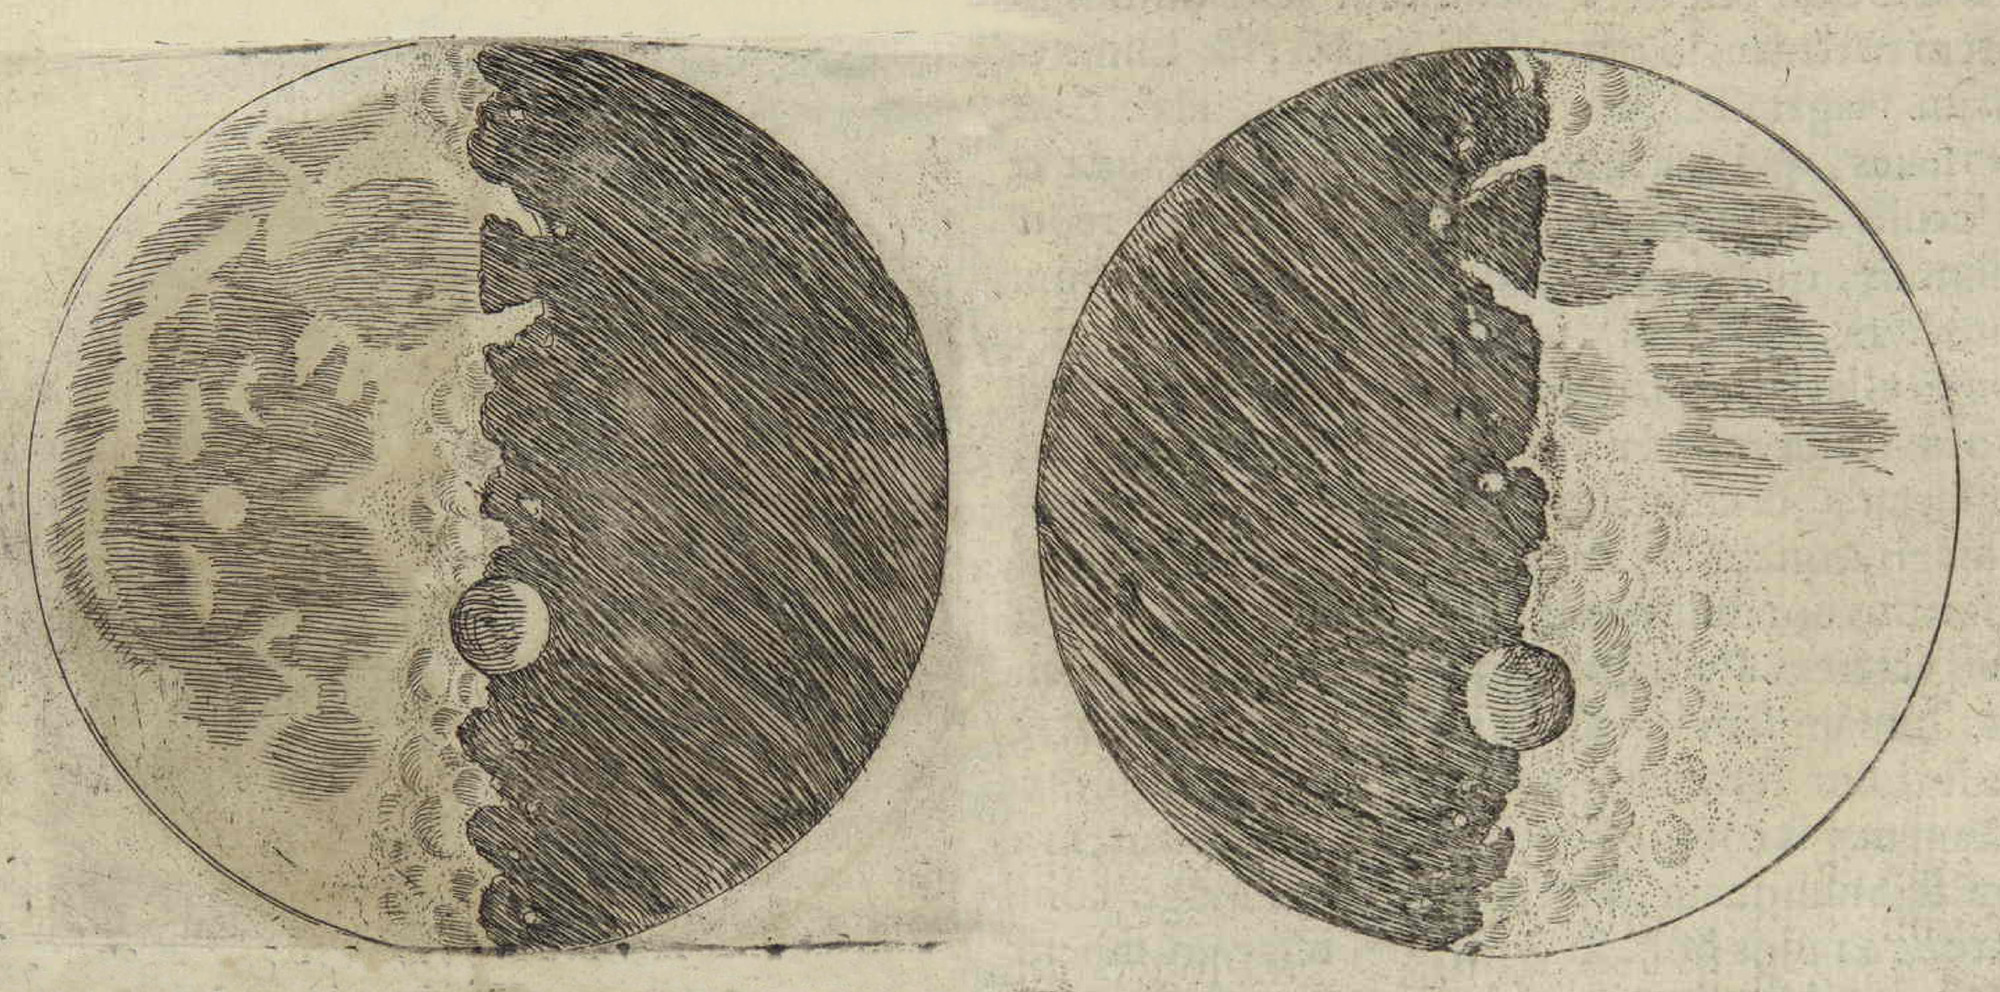 2000x992 Galileo's Moon Drawing Digital Museum Of Planetary Mapping